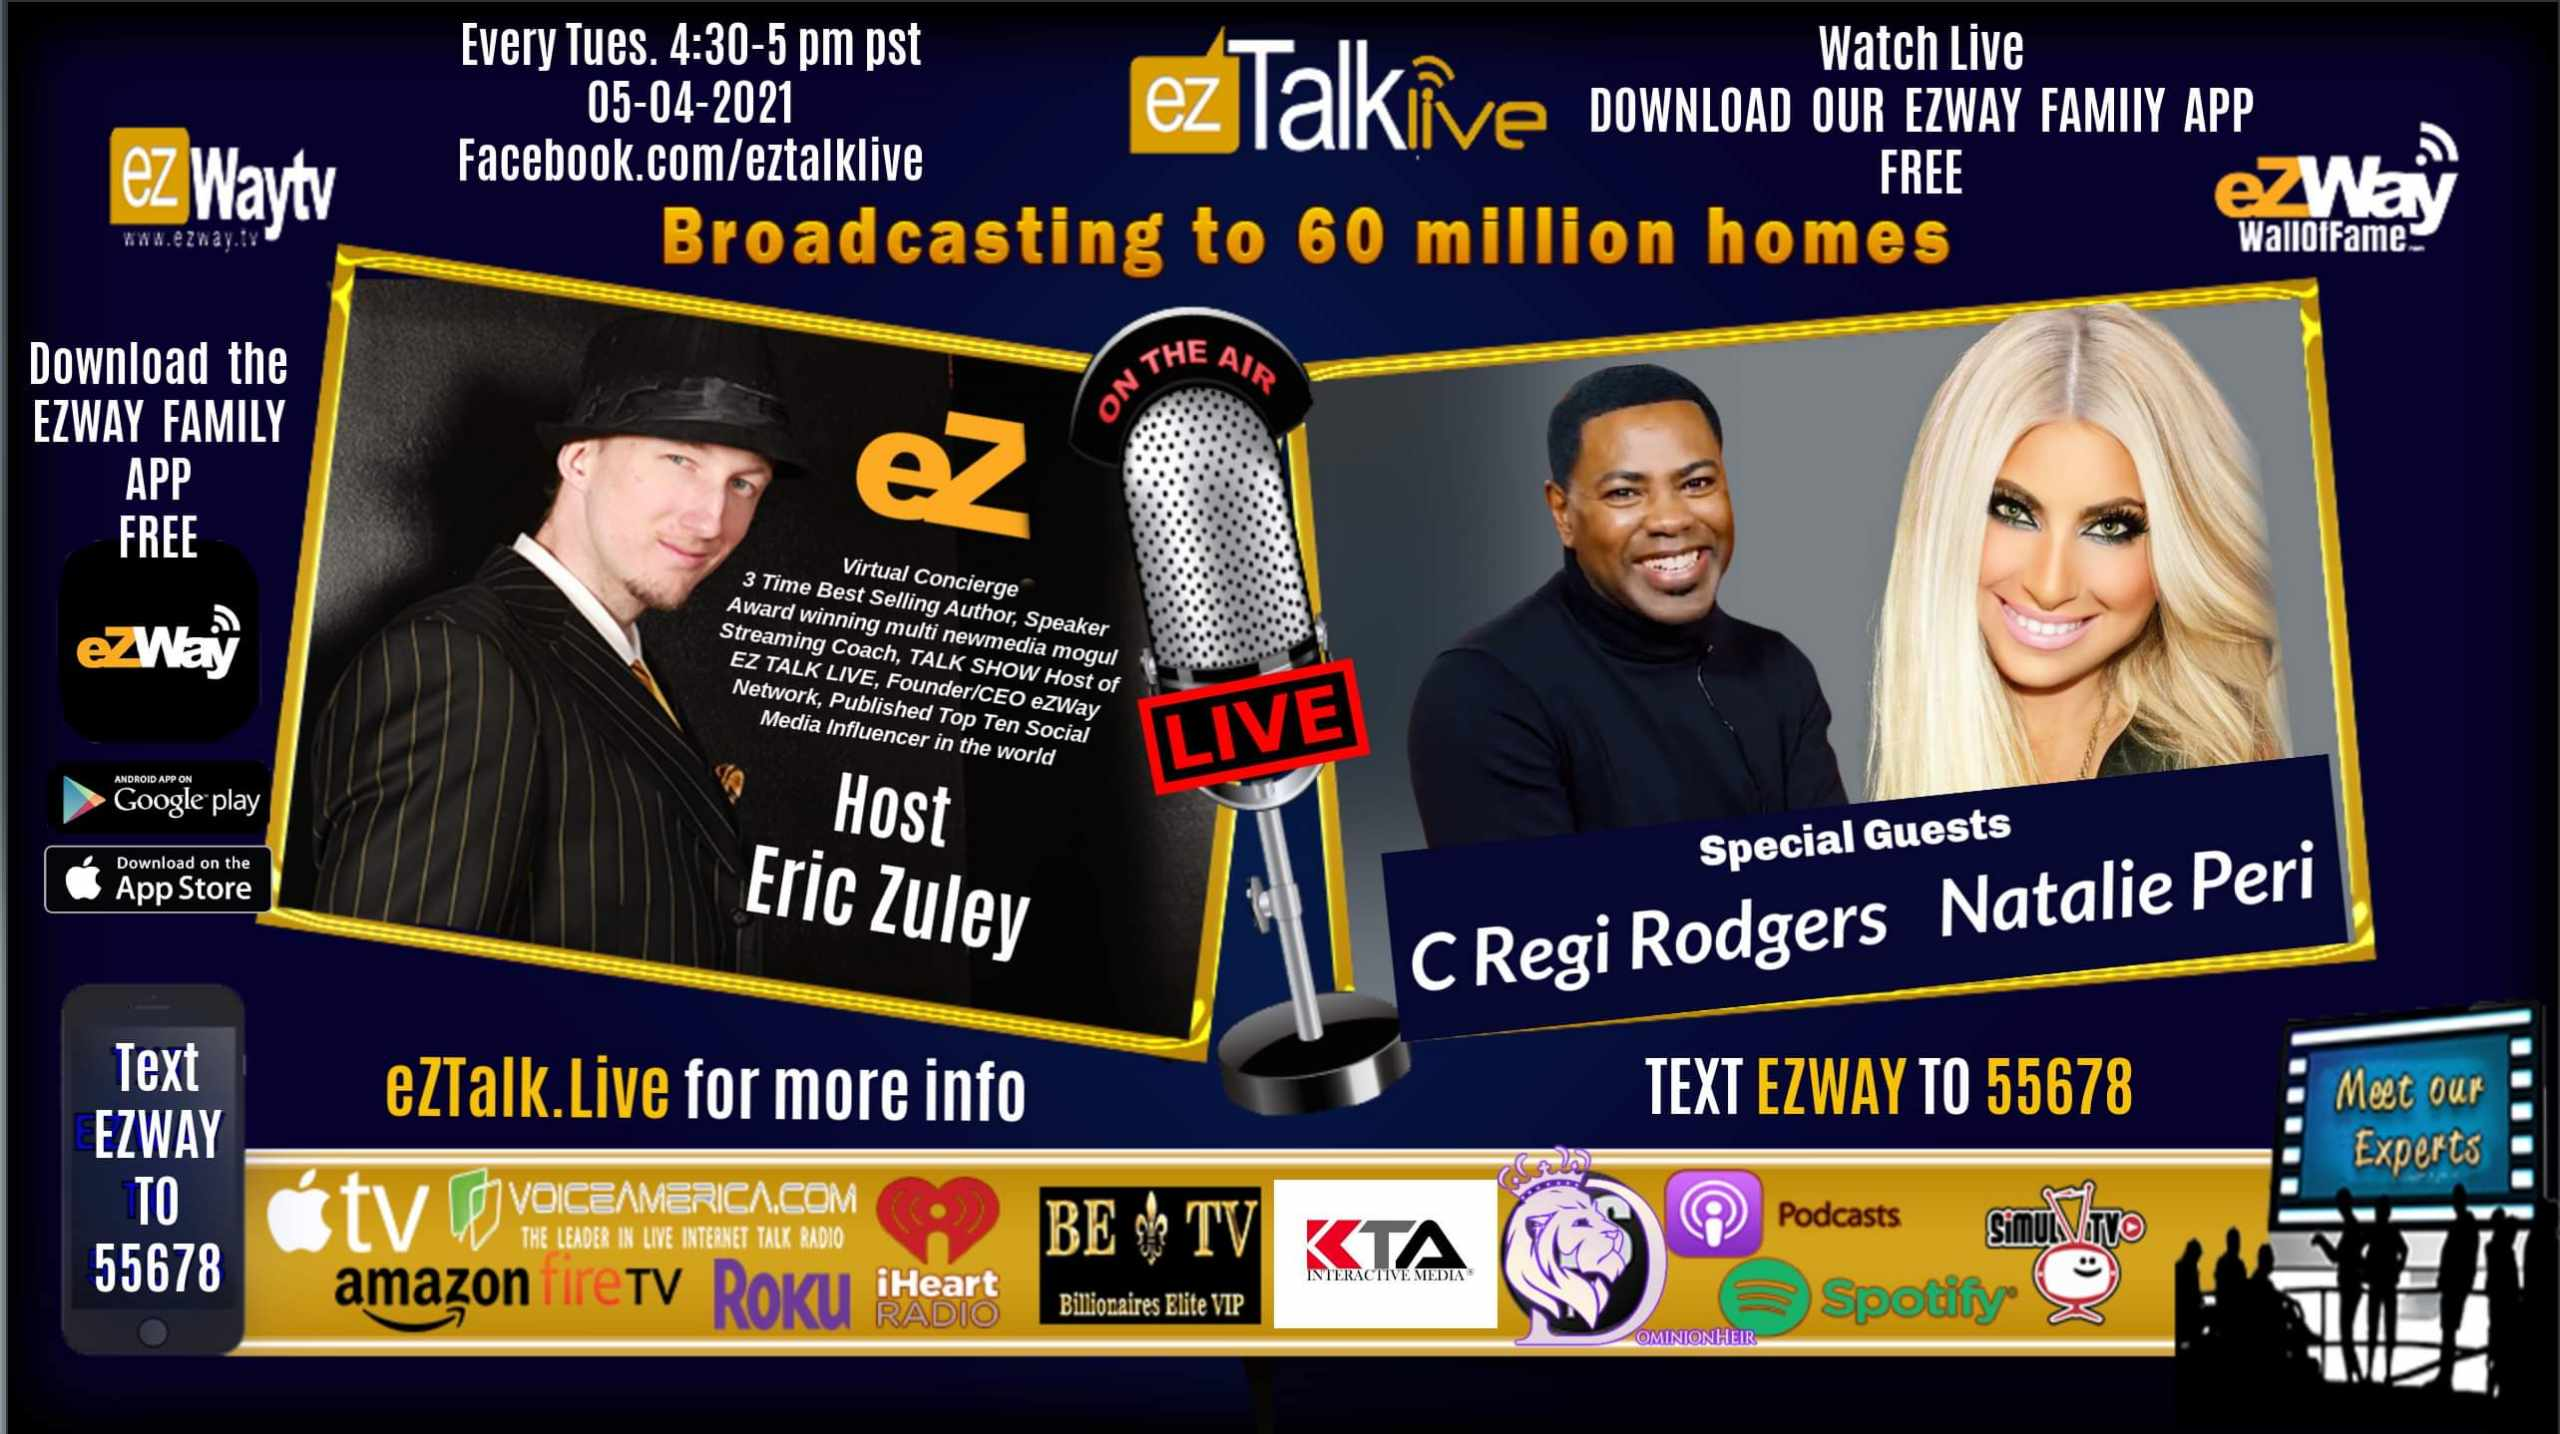 EZ TALK LIVE with Eric Zuley Feat. C Regi Rodgers and Natalie Peri